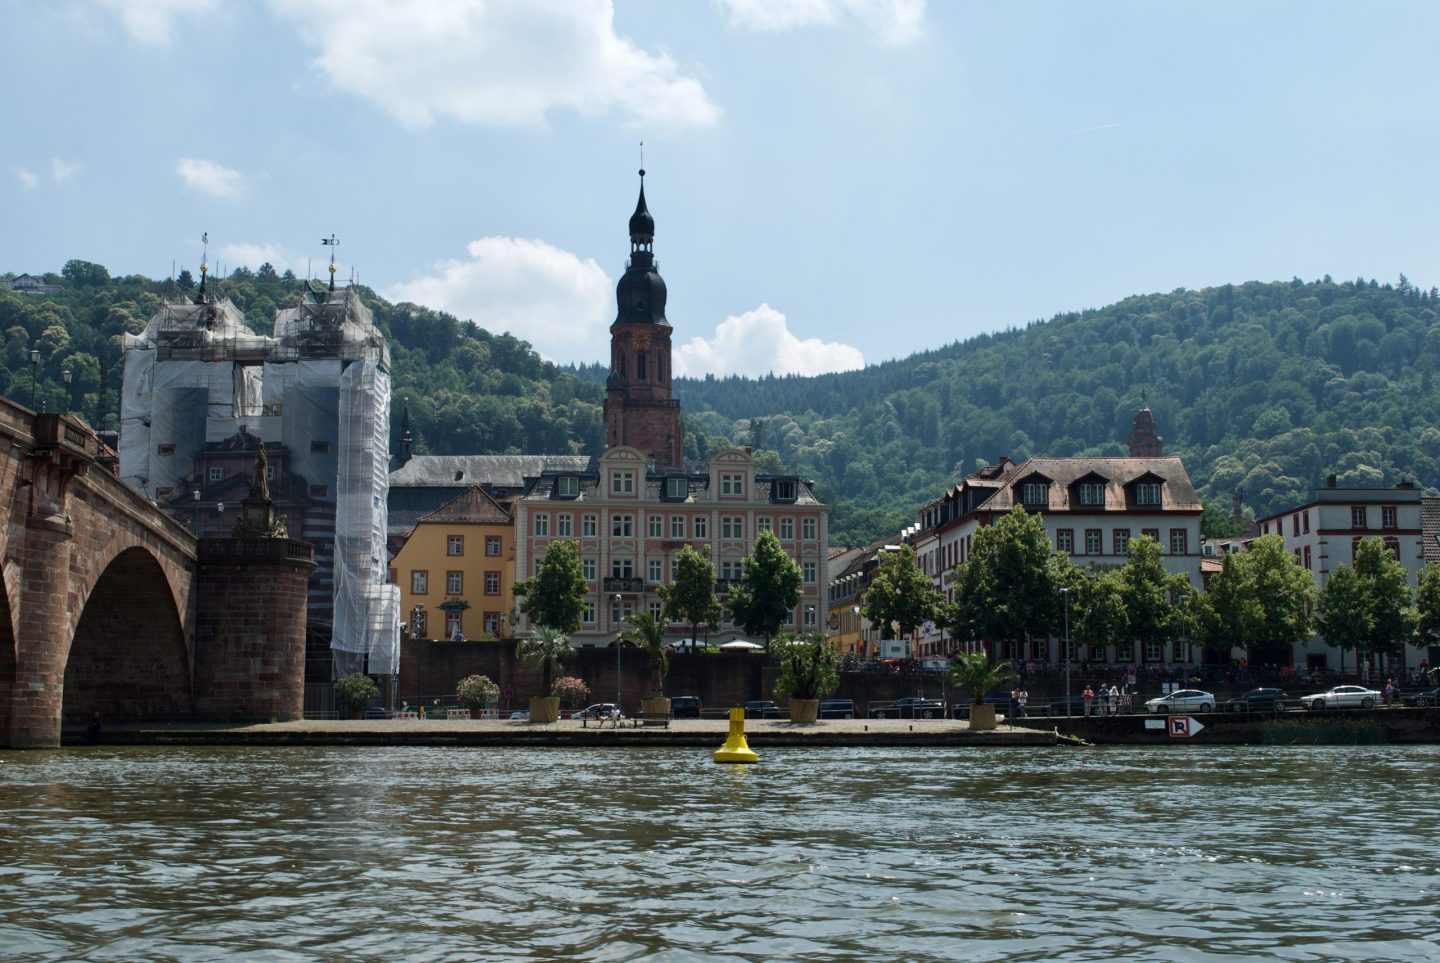 The view of the Old Bridge and Old Town from one of the little motorboats on the Neckar.